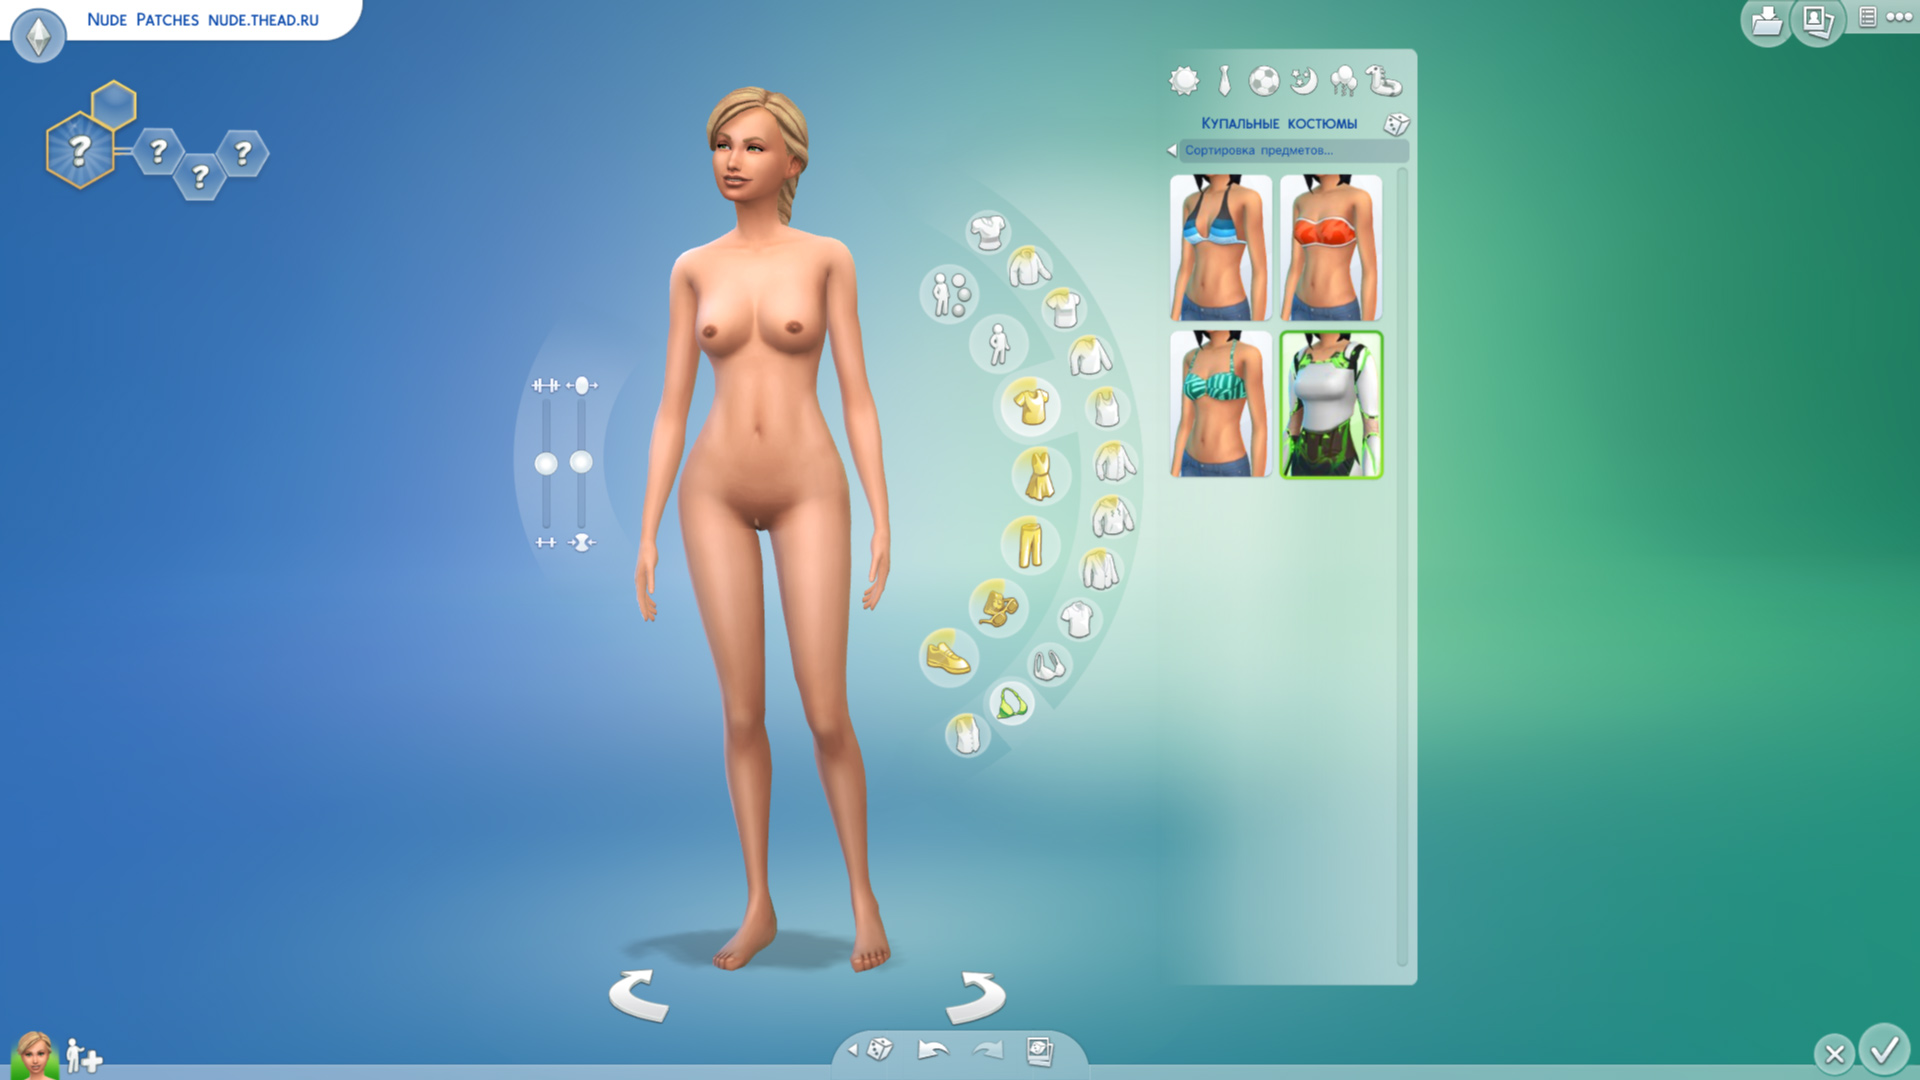 Nude mods for sims 3 nackt pictures